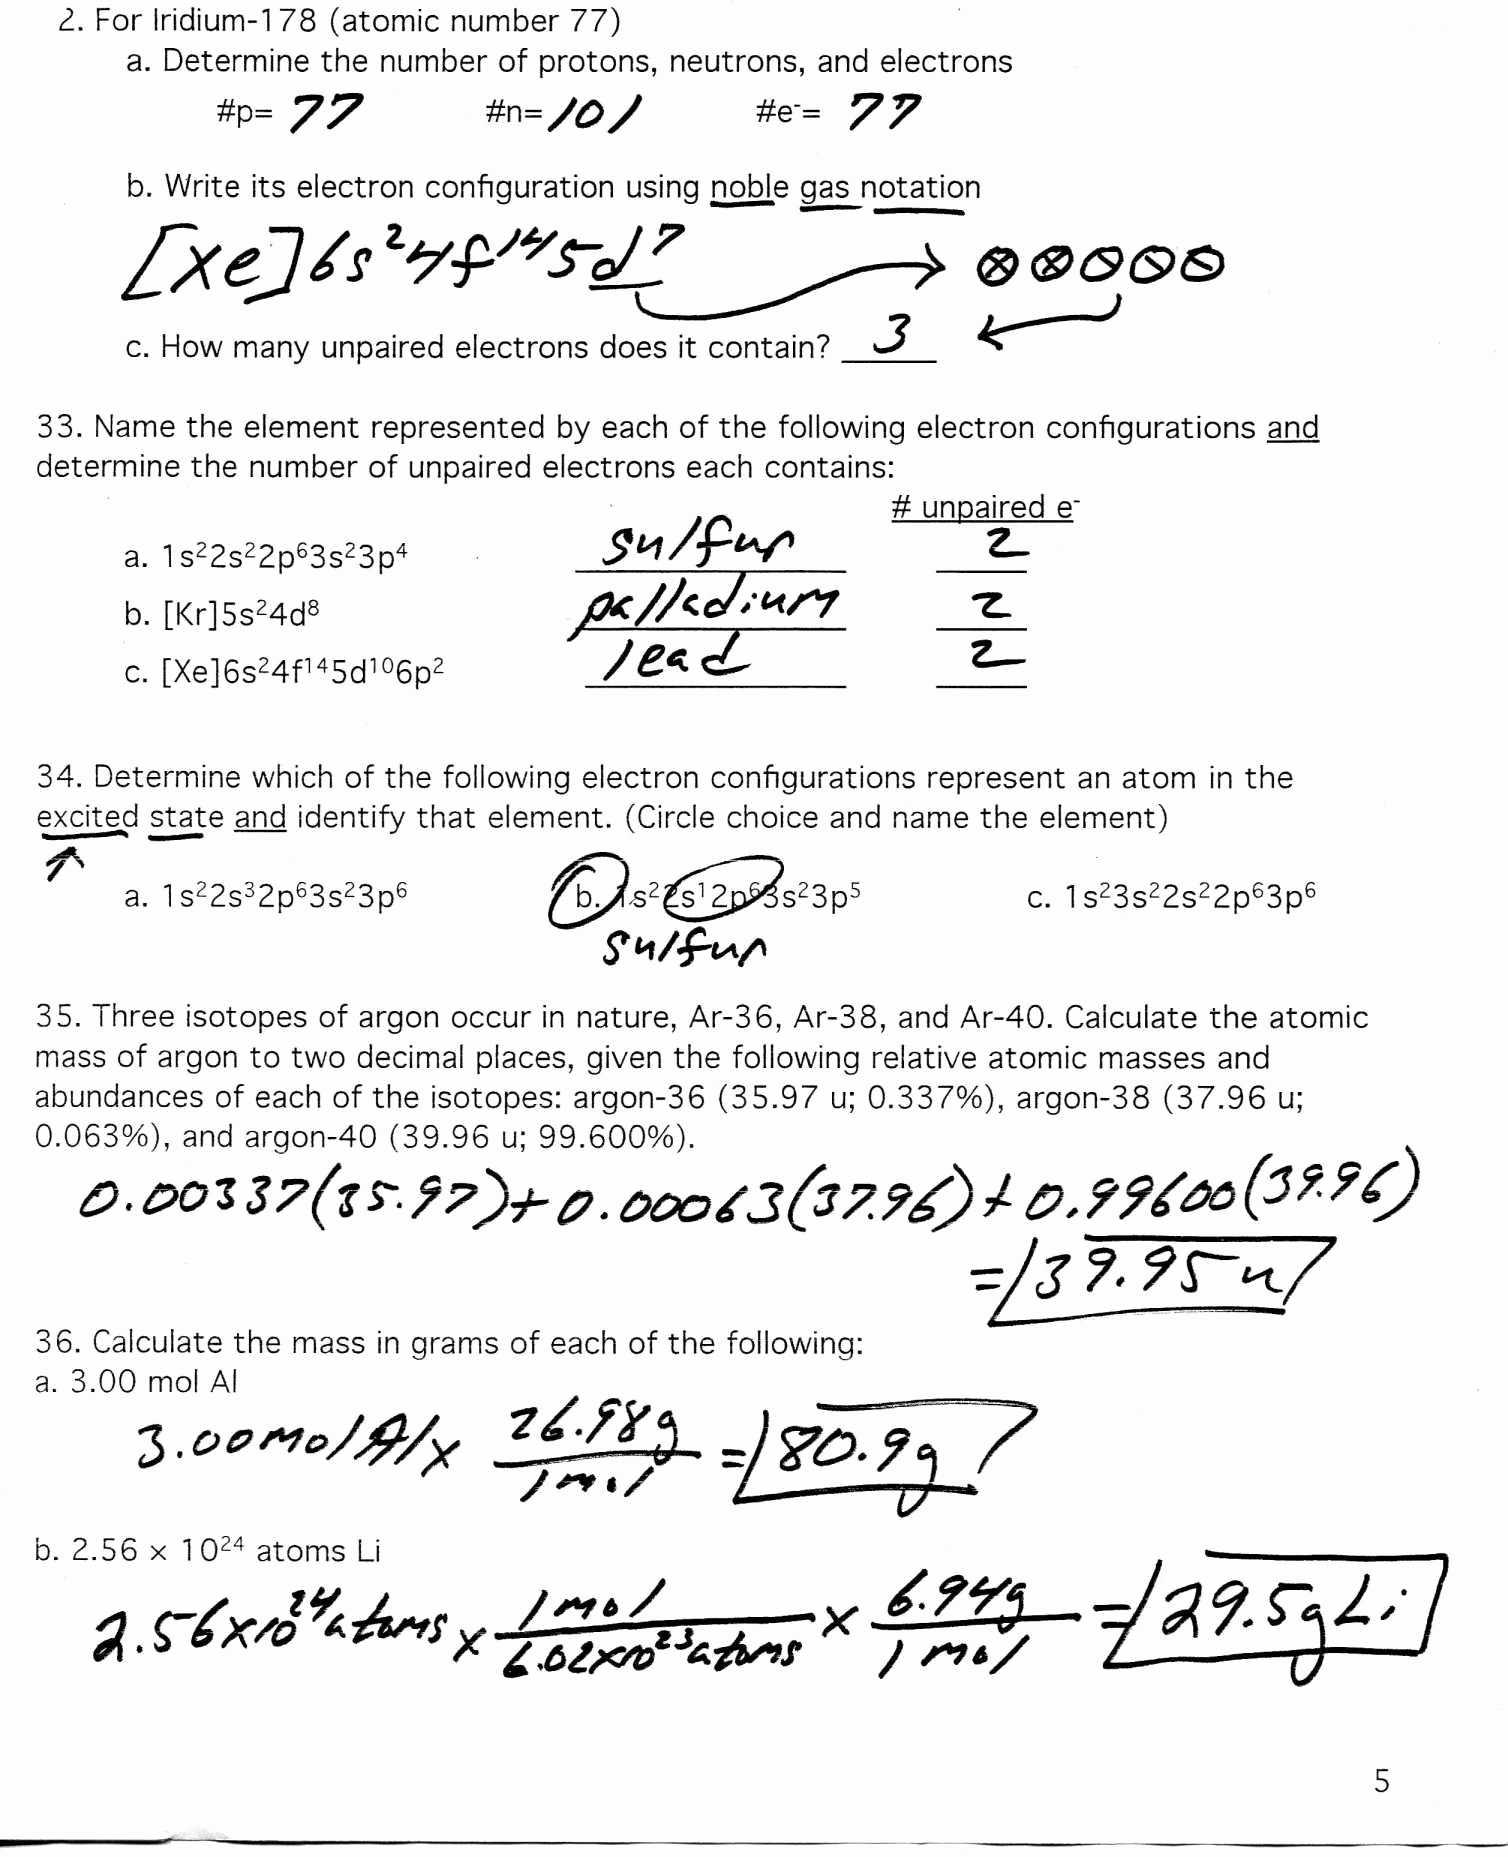 Periodic Table Practice Worksheet New Rontavstudio Protons Neutrons and Electrons Practice